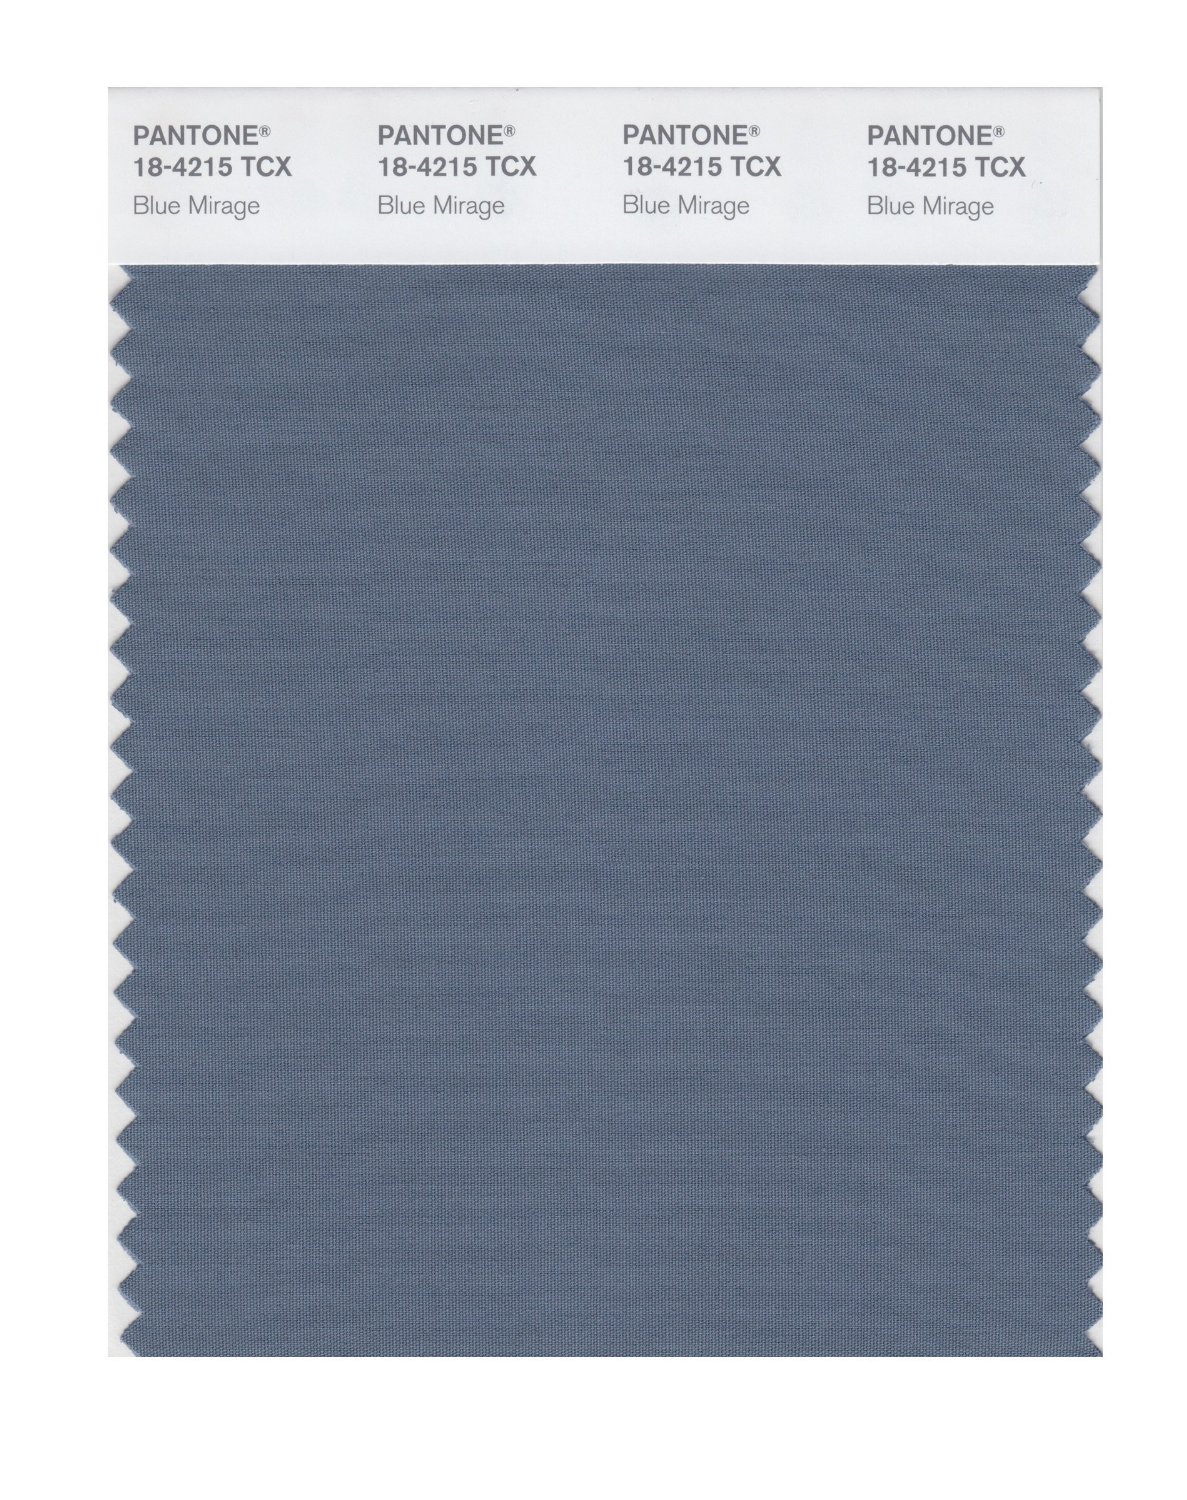 Pantone Smart Swatch 18-4215 Blue Mirage